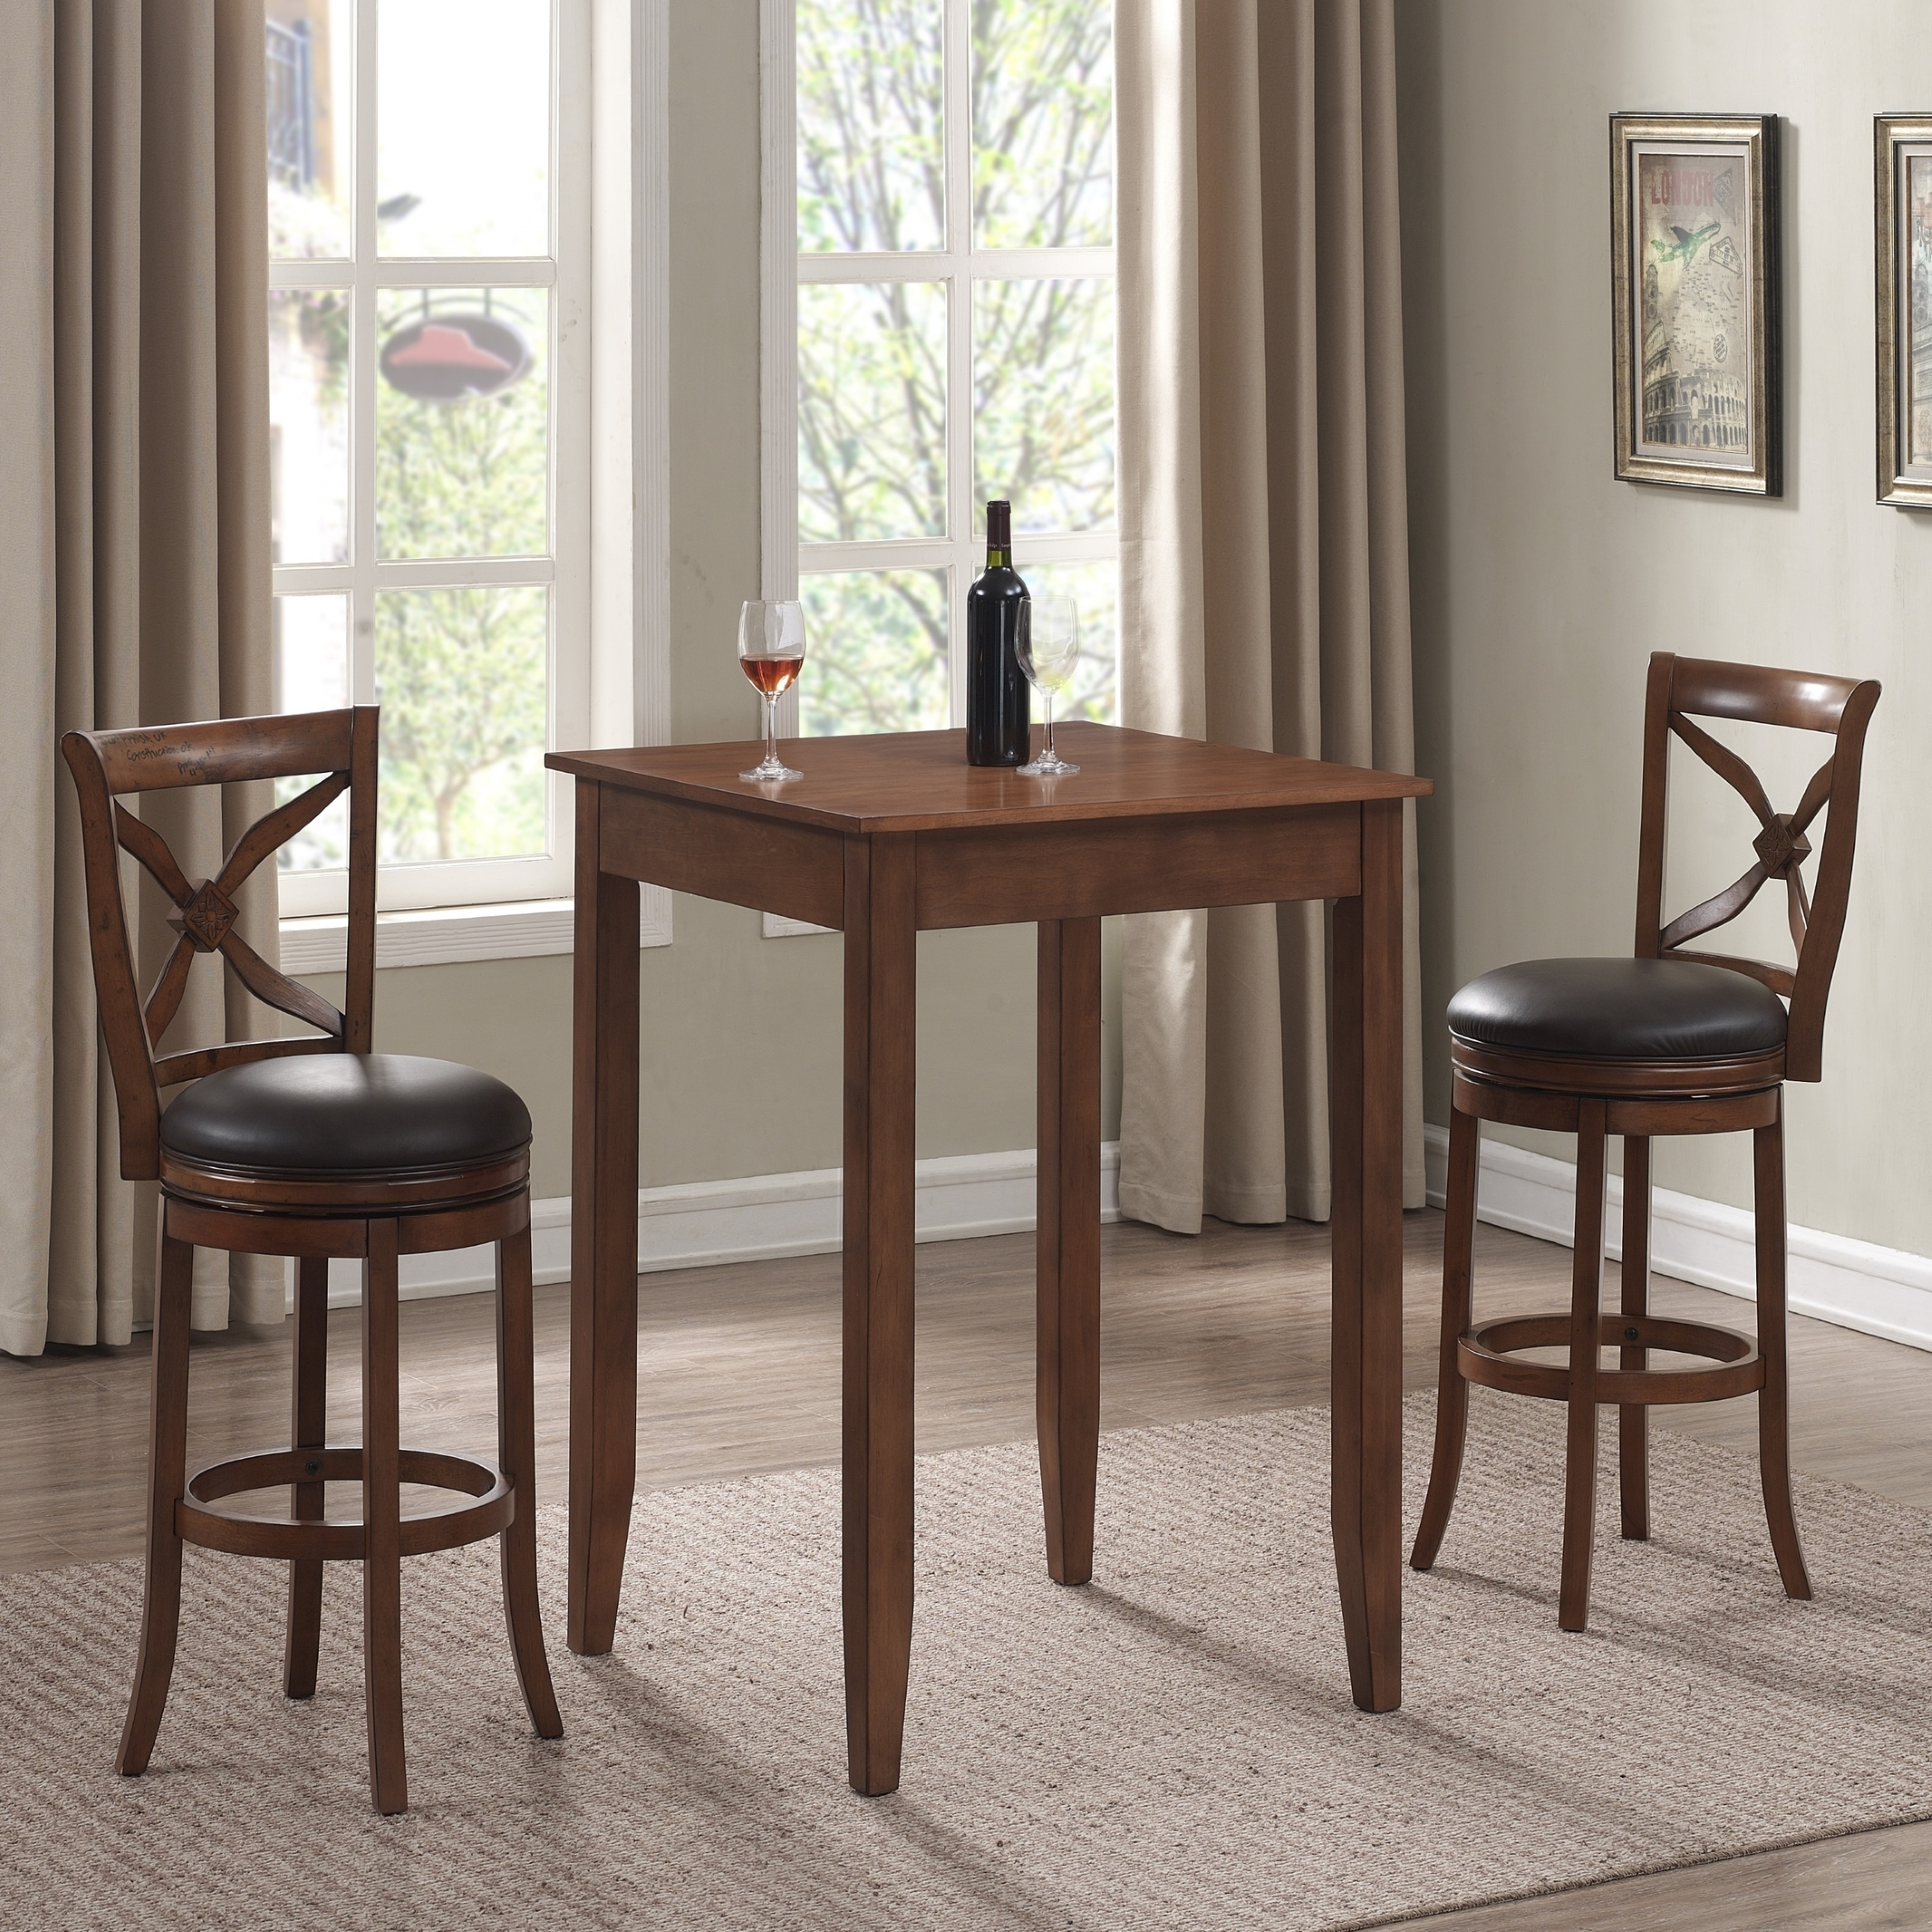 Shop Lucca 42 Inch High Pub Table By Greyson Living   On Sale   Free  Shipping Today   Overstock.com   14783198